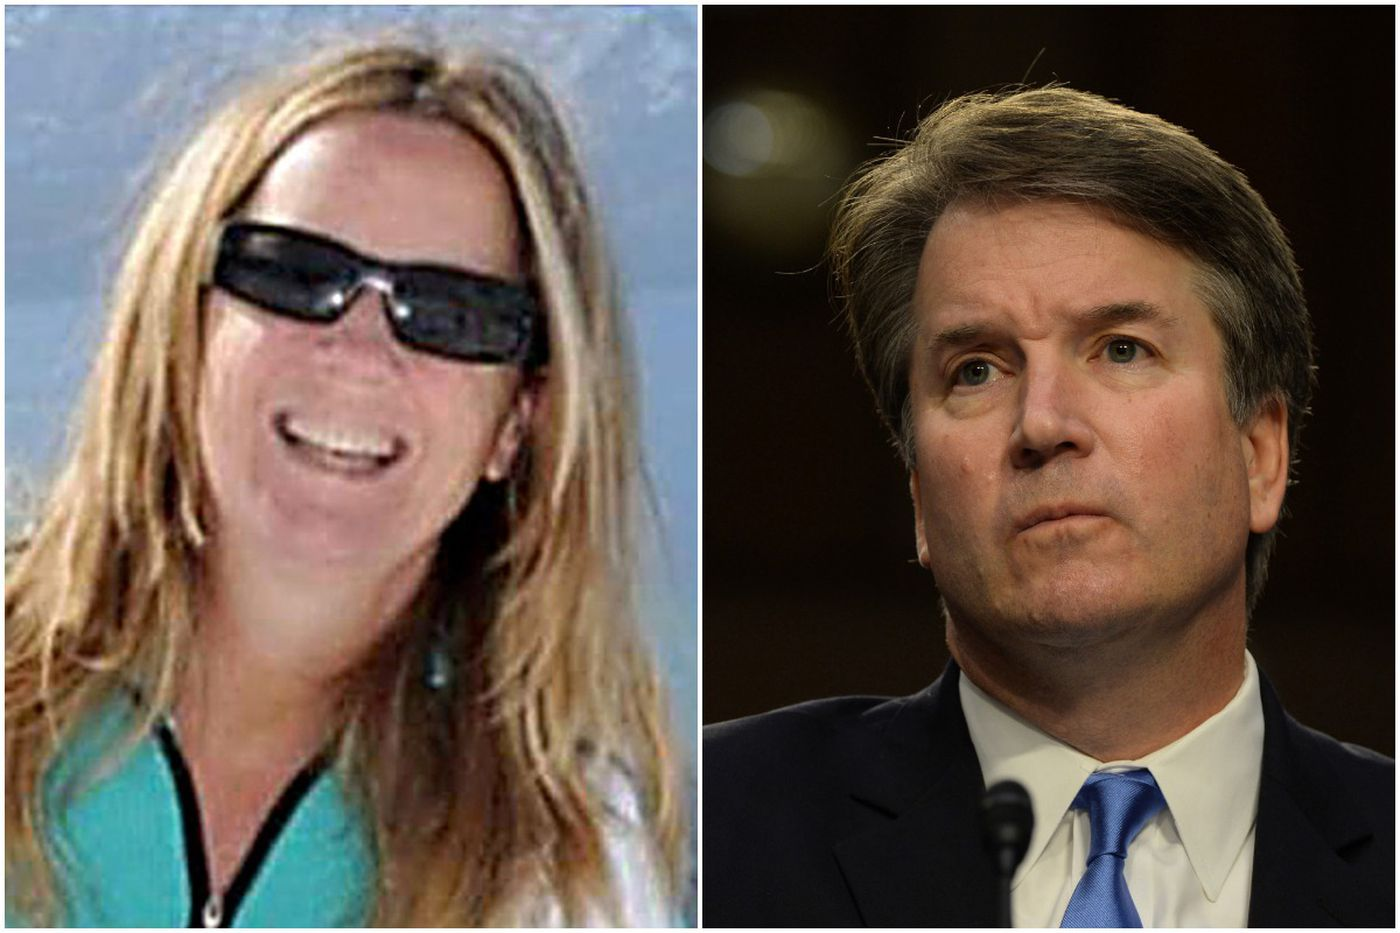 The effort to destroy Brett Kavanaugh looks like a revenge attack on a civilization deemed too male | Opinion